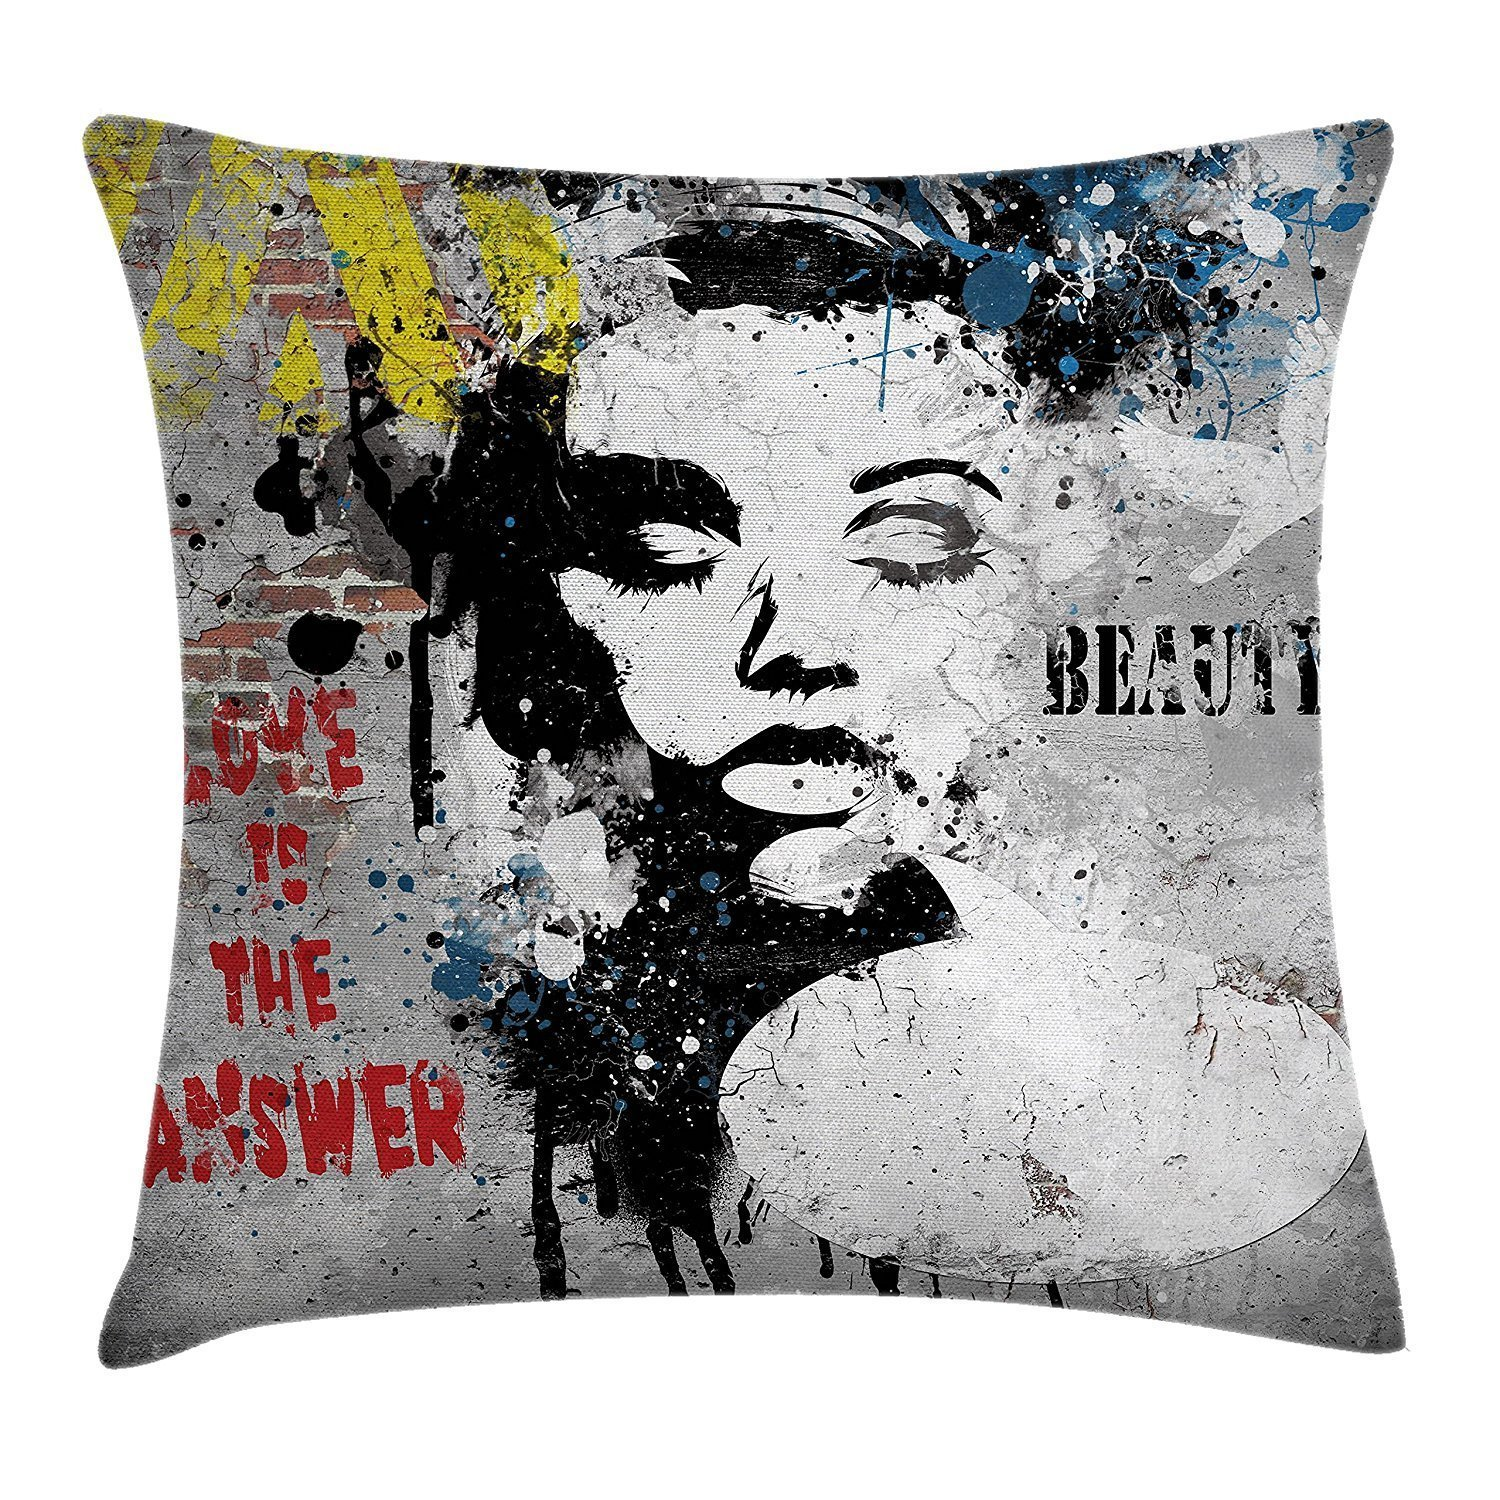 Graffiti Decor Throw Pillow Cushion Cover, Modern Grunge Wall with a Girl and Quotes Casual Youth Urban Fashion Print, Decorative Square Accent Pillow Case, 18X18 Inches, Grey Yellow DCOCY